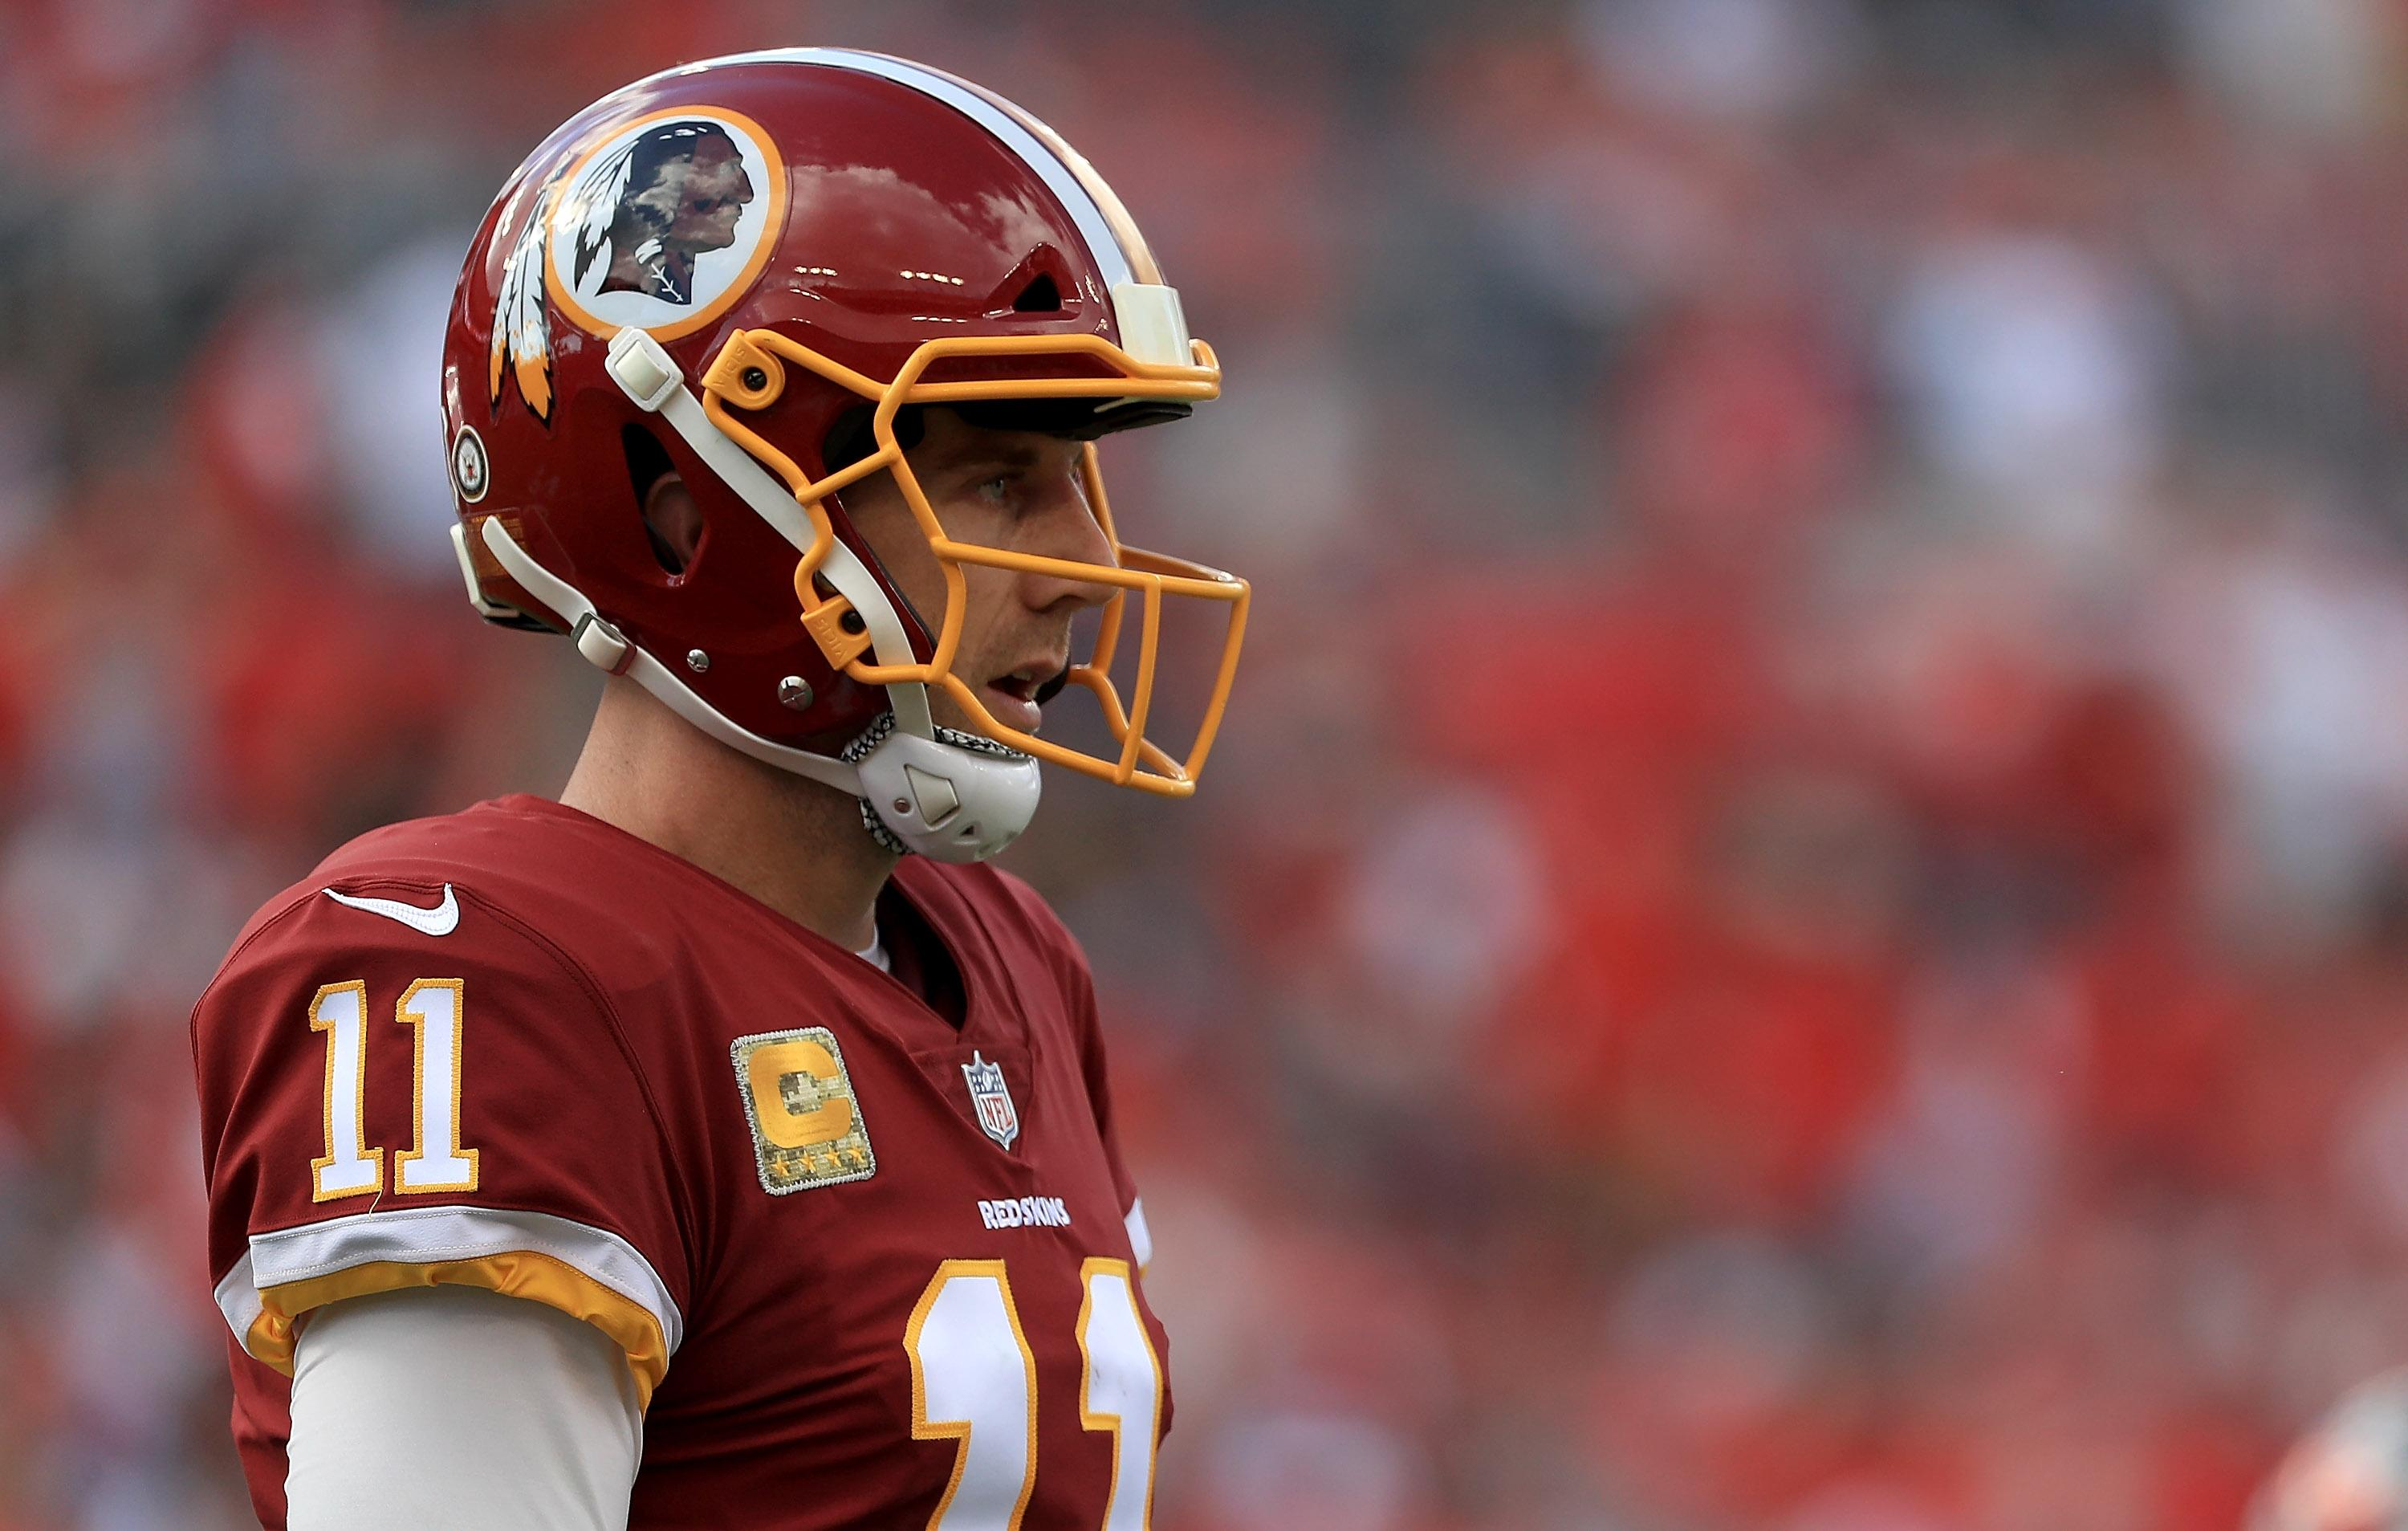 Alex Smith undergoes successful surgery, Redskins sign Mark Sanchez